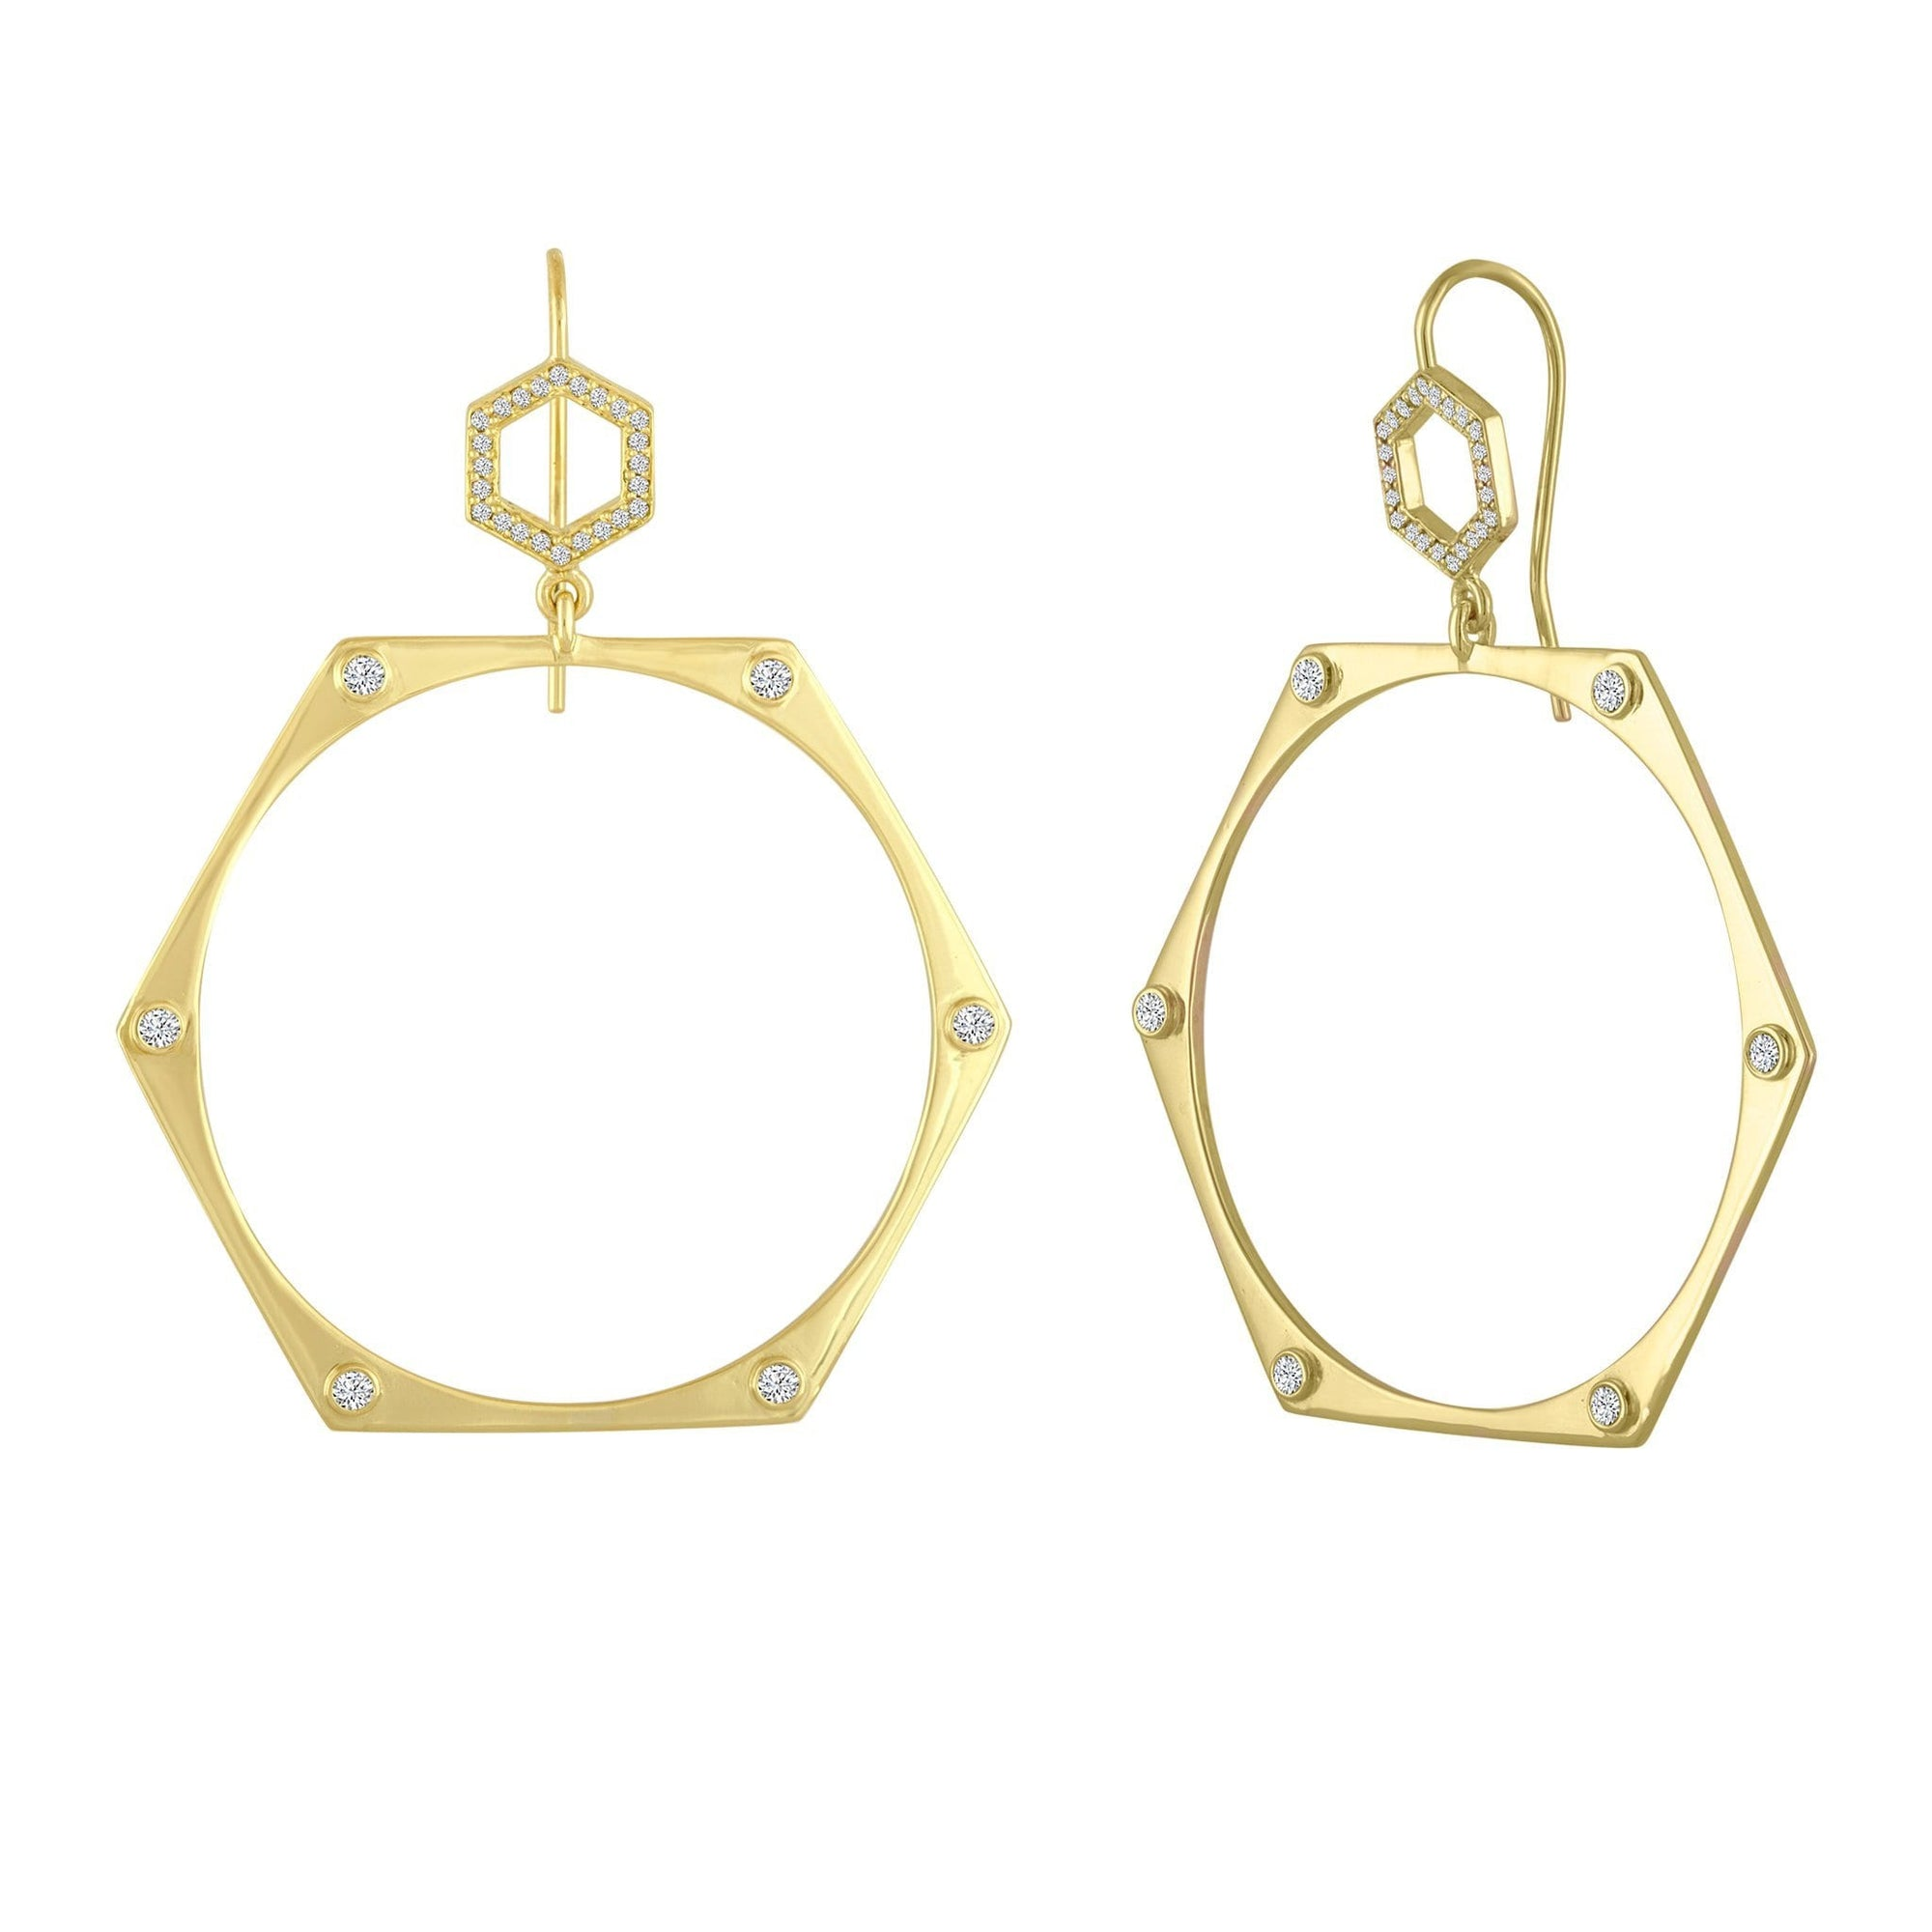 Mix Earrings: 18k Gold, Champagne Diamonds